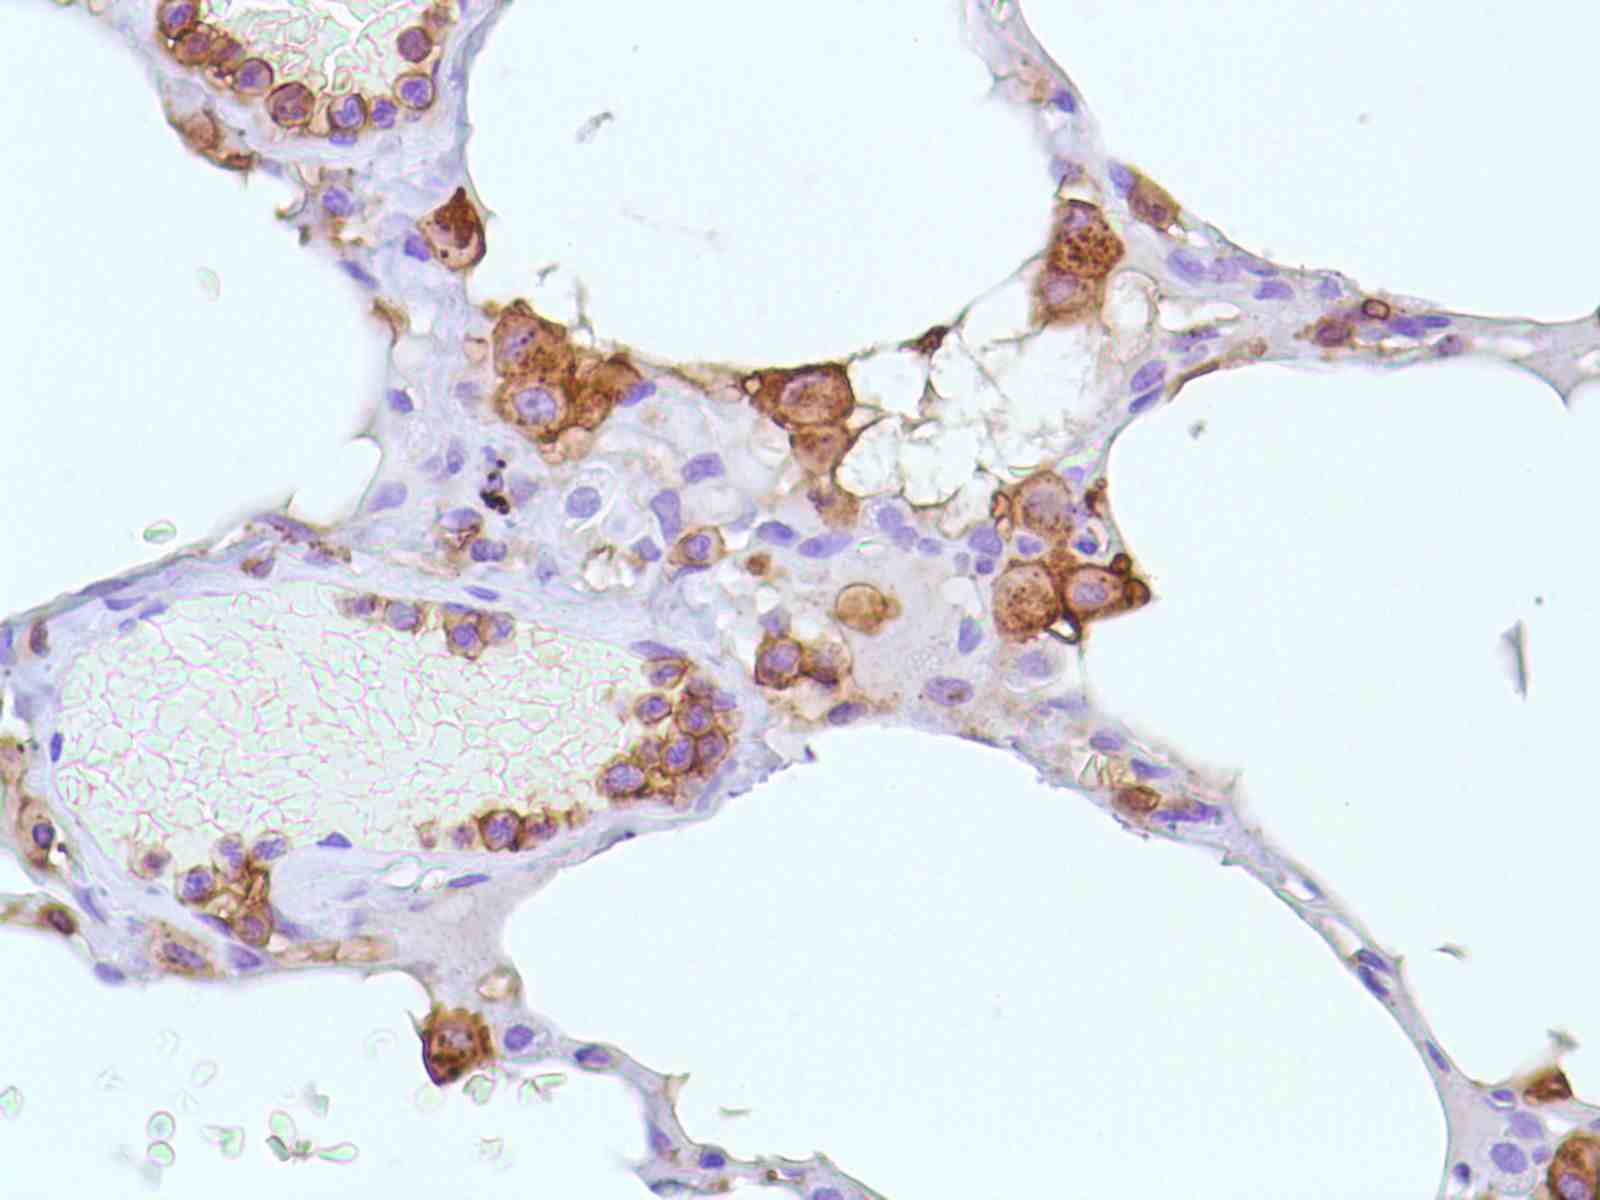 Human Lung stained with anti-CD43 antibody